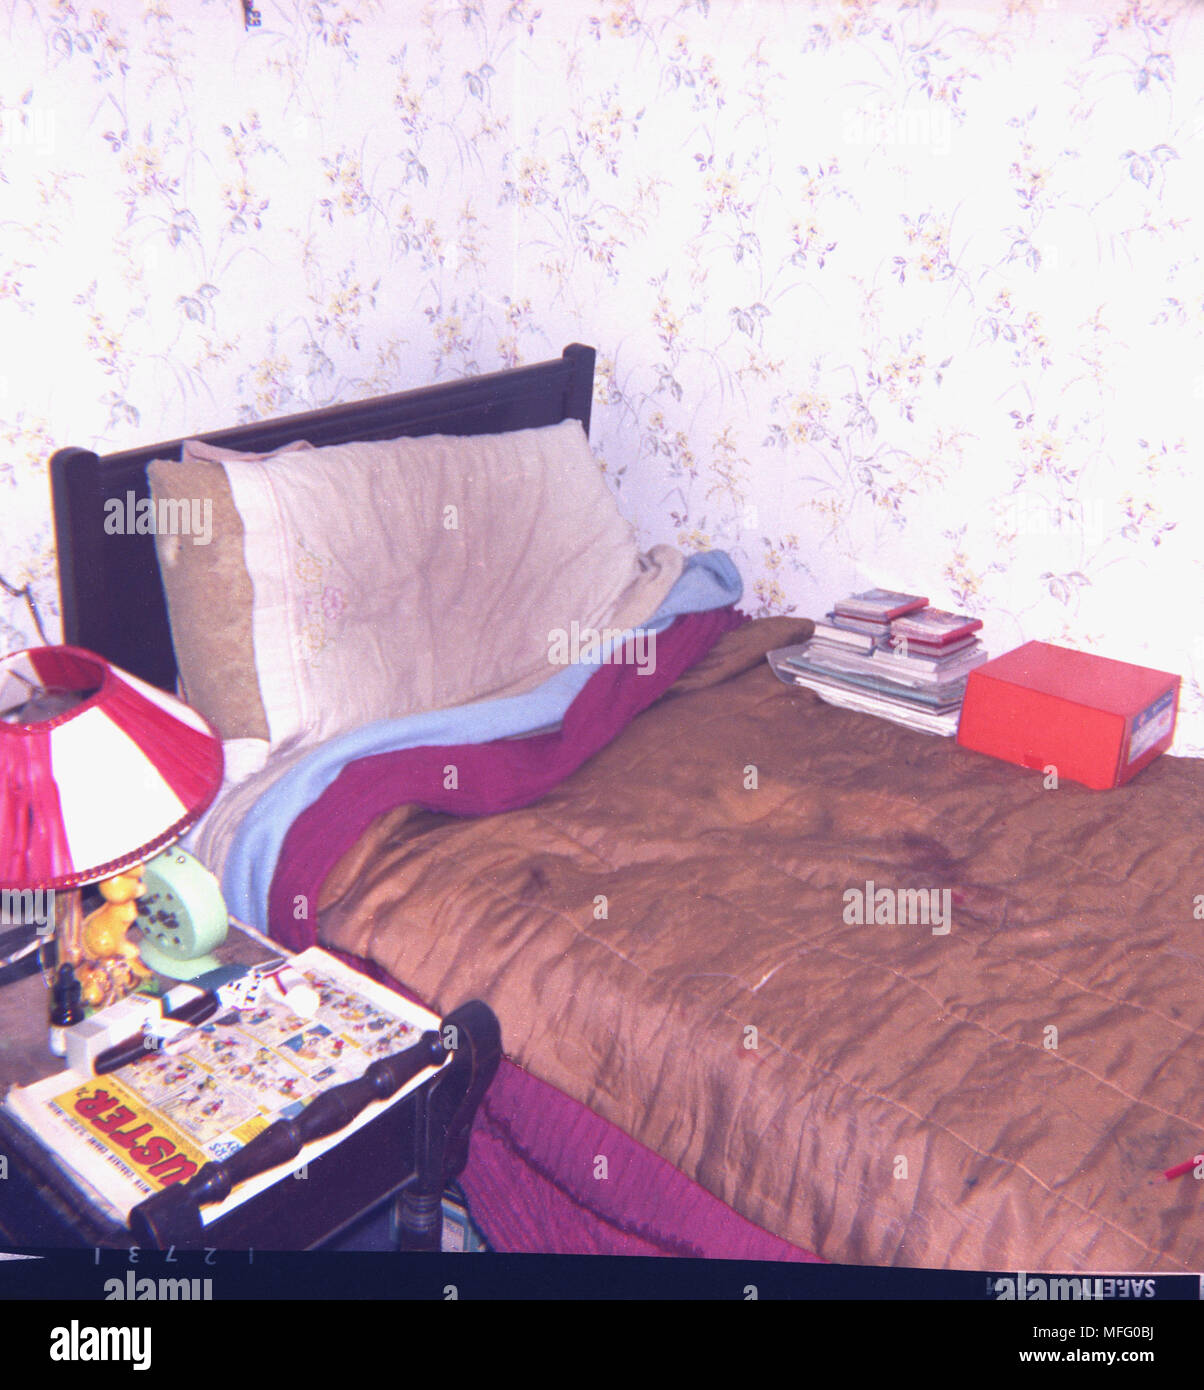 1970s, picture shows a scruffy, untidy single bed in a corner of a room, with a shiny brown blanket cover over it, ansd with a Buster comic on the bedside table, England, UK. - Stock Image